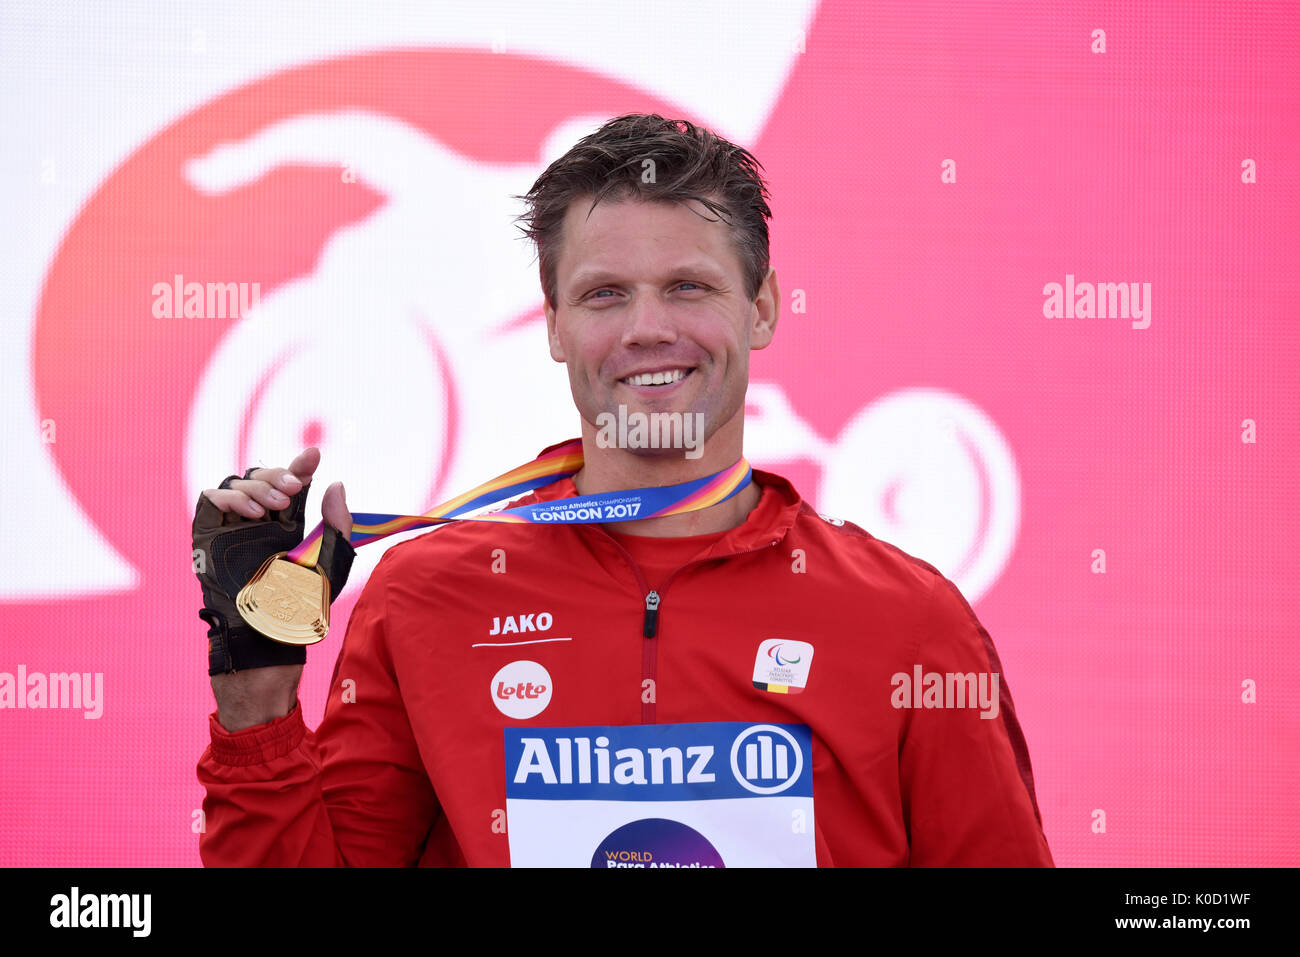 peter-genyn-of-belgium-gold-medalist-at-the-medal-ceremony-for-the-K0D1WF.jpg